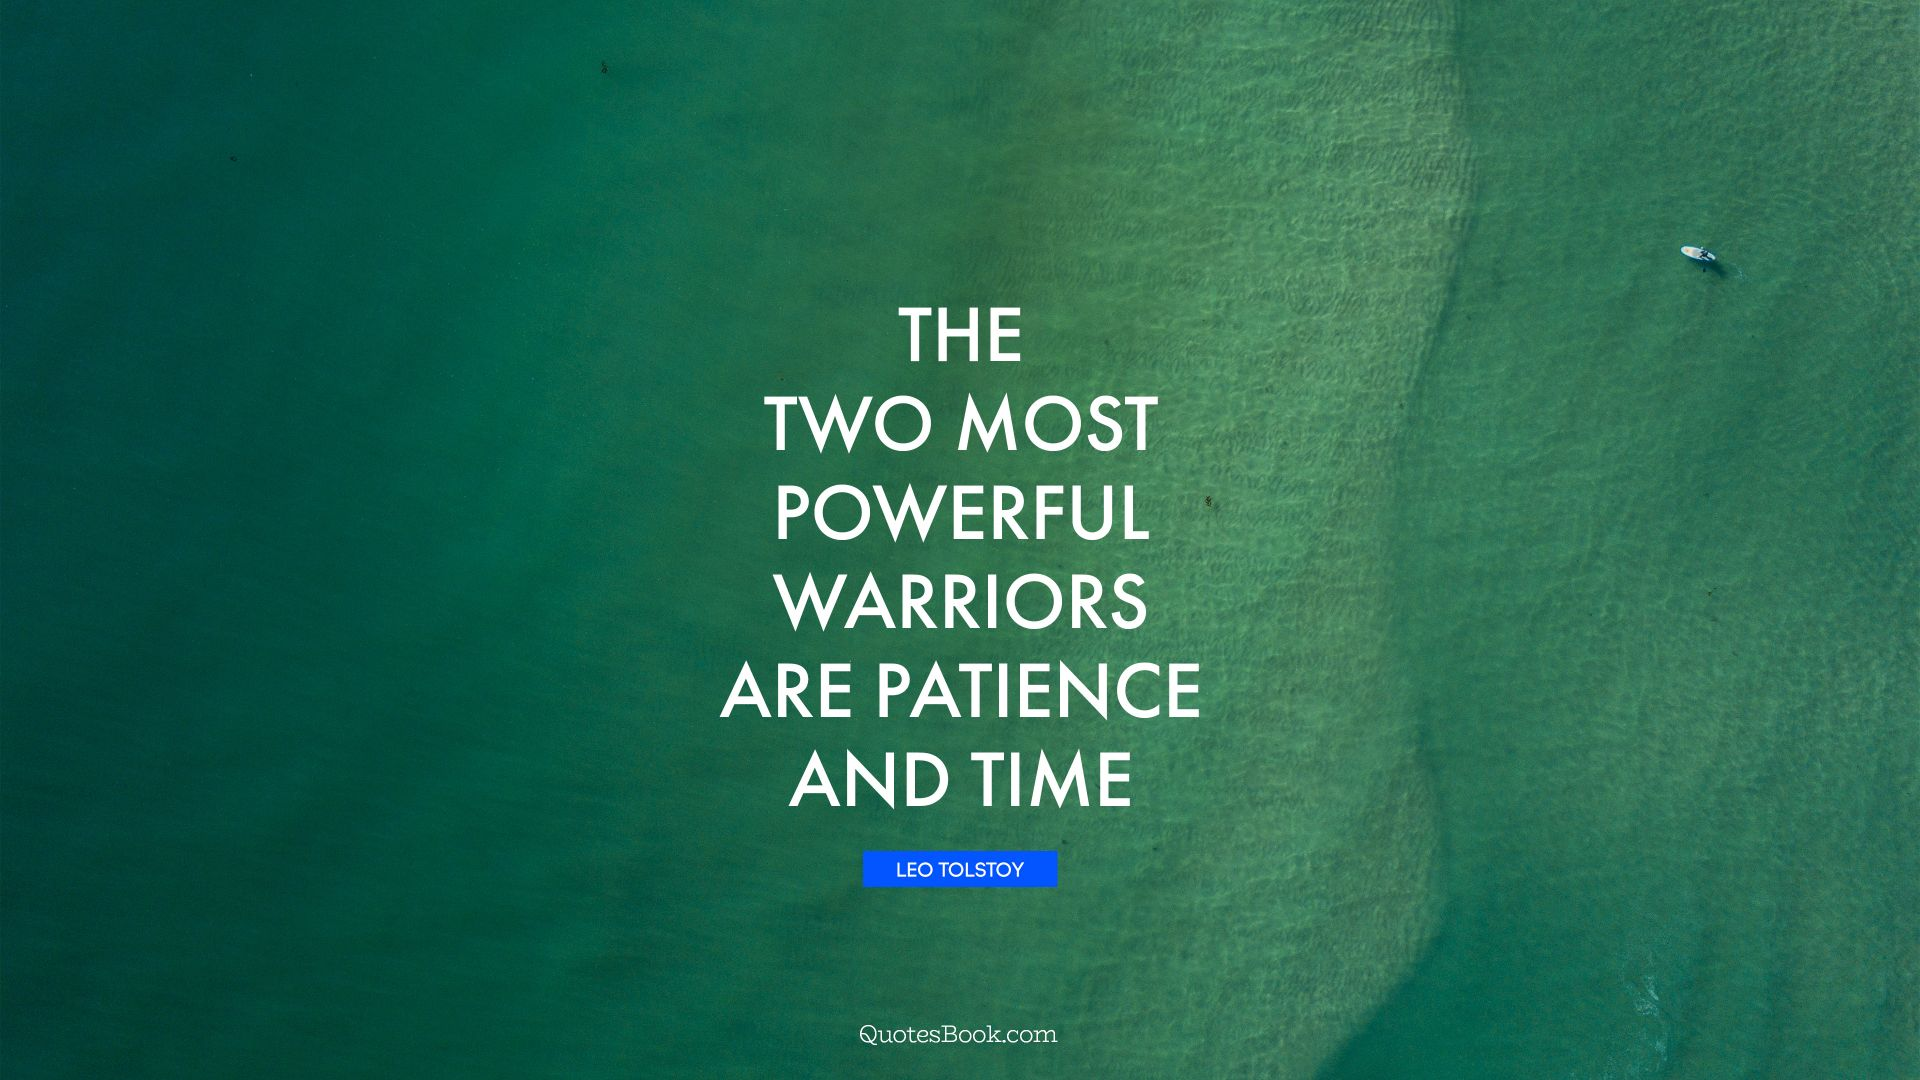 The two most powerful warriors are patience and time. - Quote by Leo Tolstoy